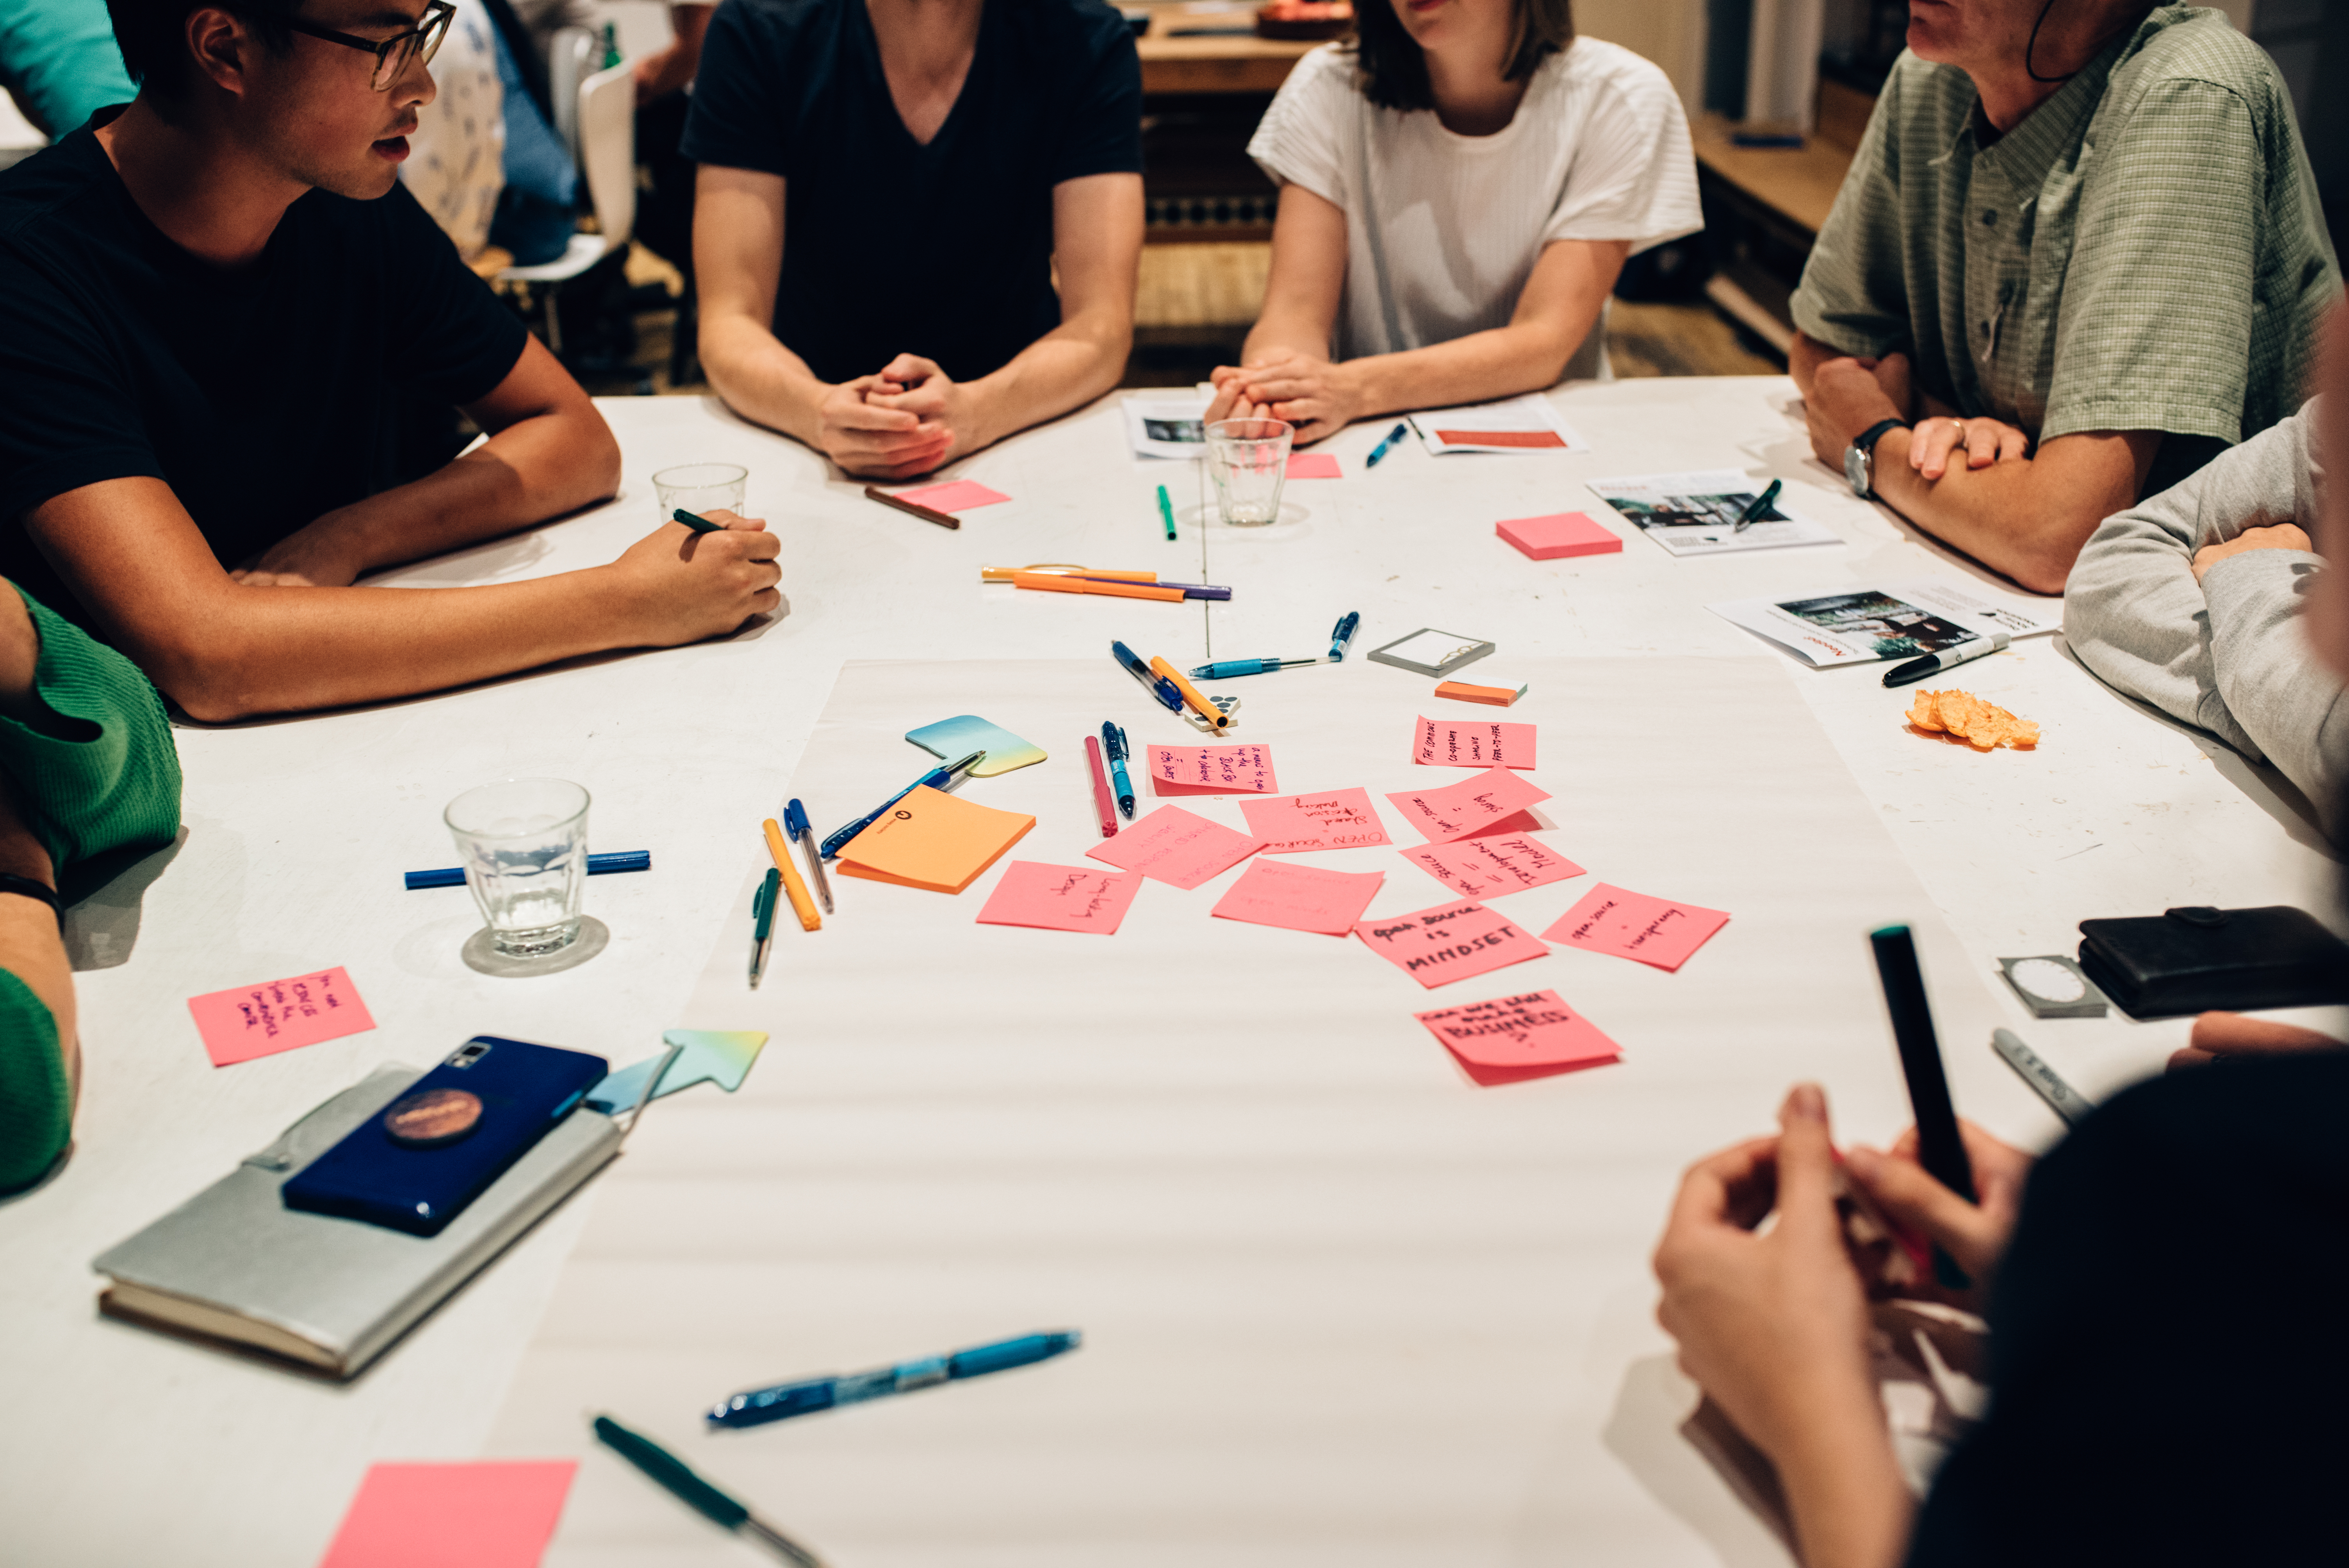 Co-creation at Waag